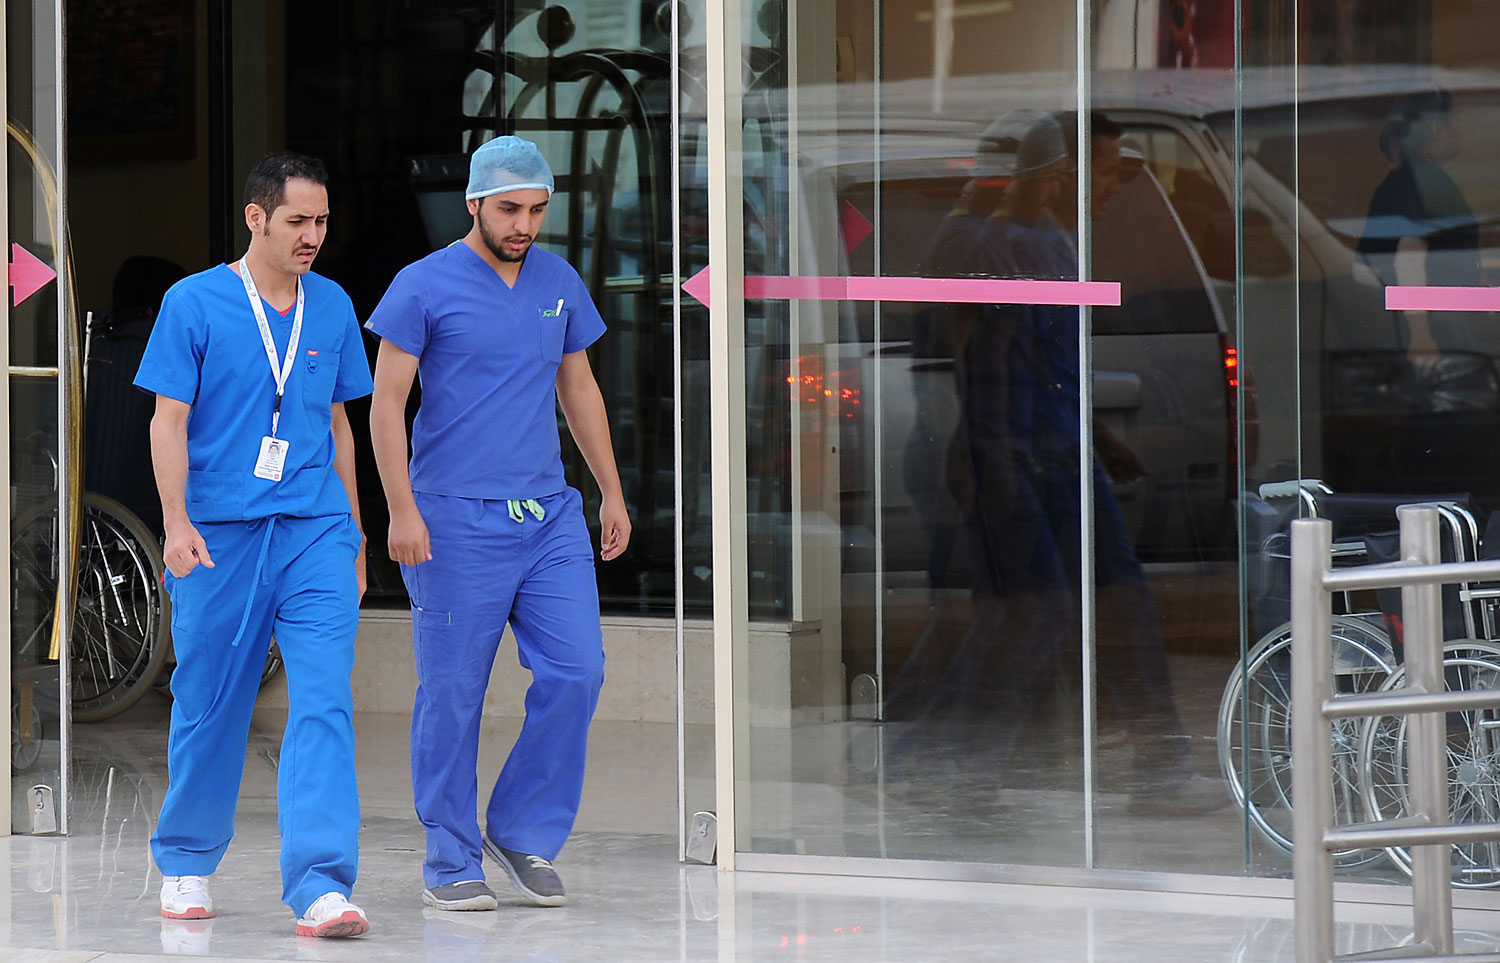 Saudi medical staff leave the emergency department at a hospital in the center of the Saudi capital Riyadh on April 8, 2014.